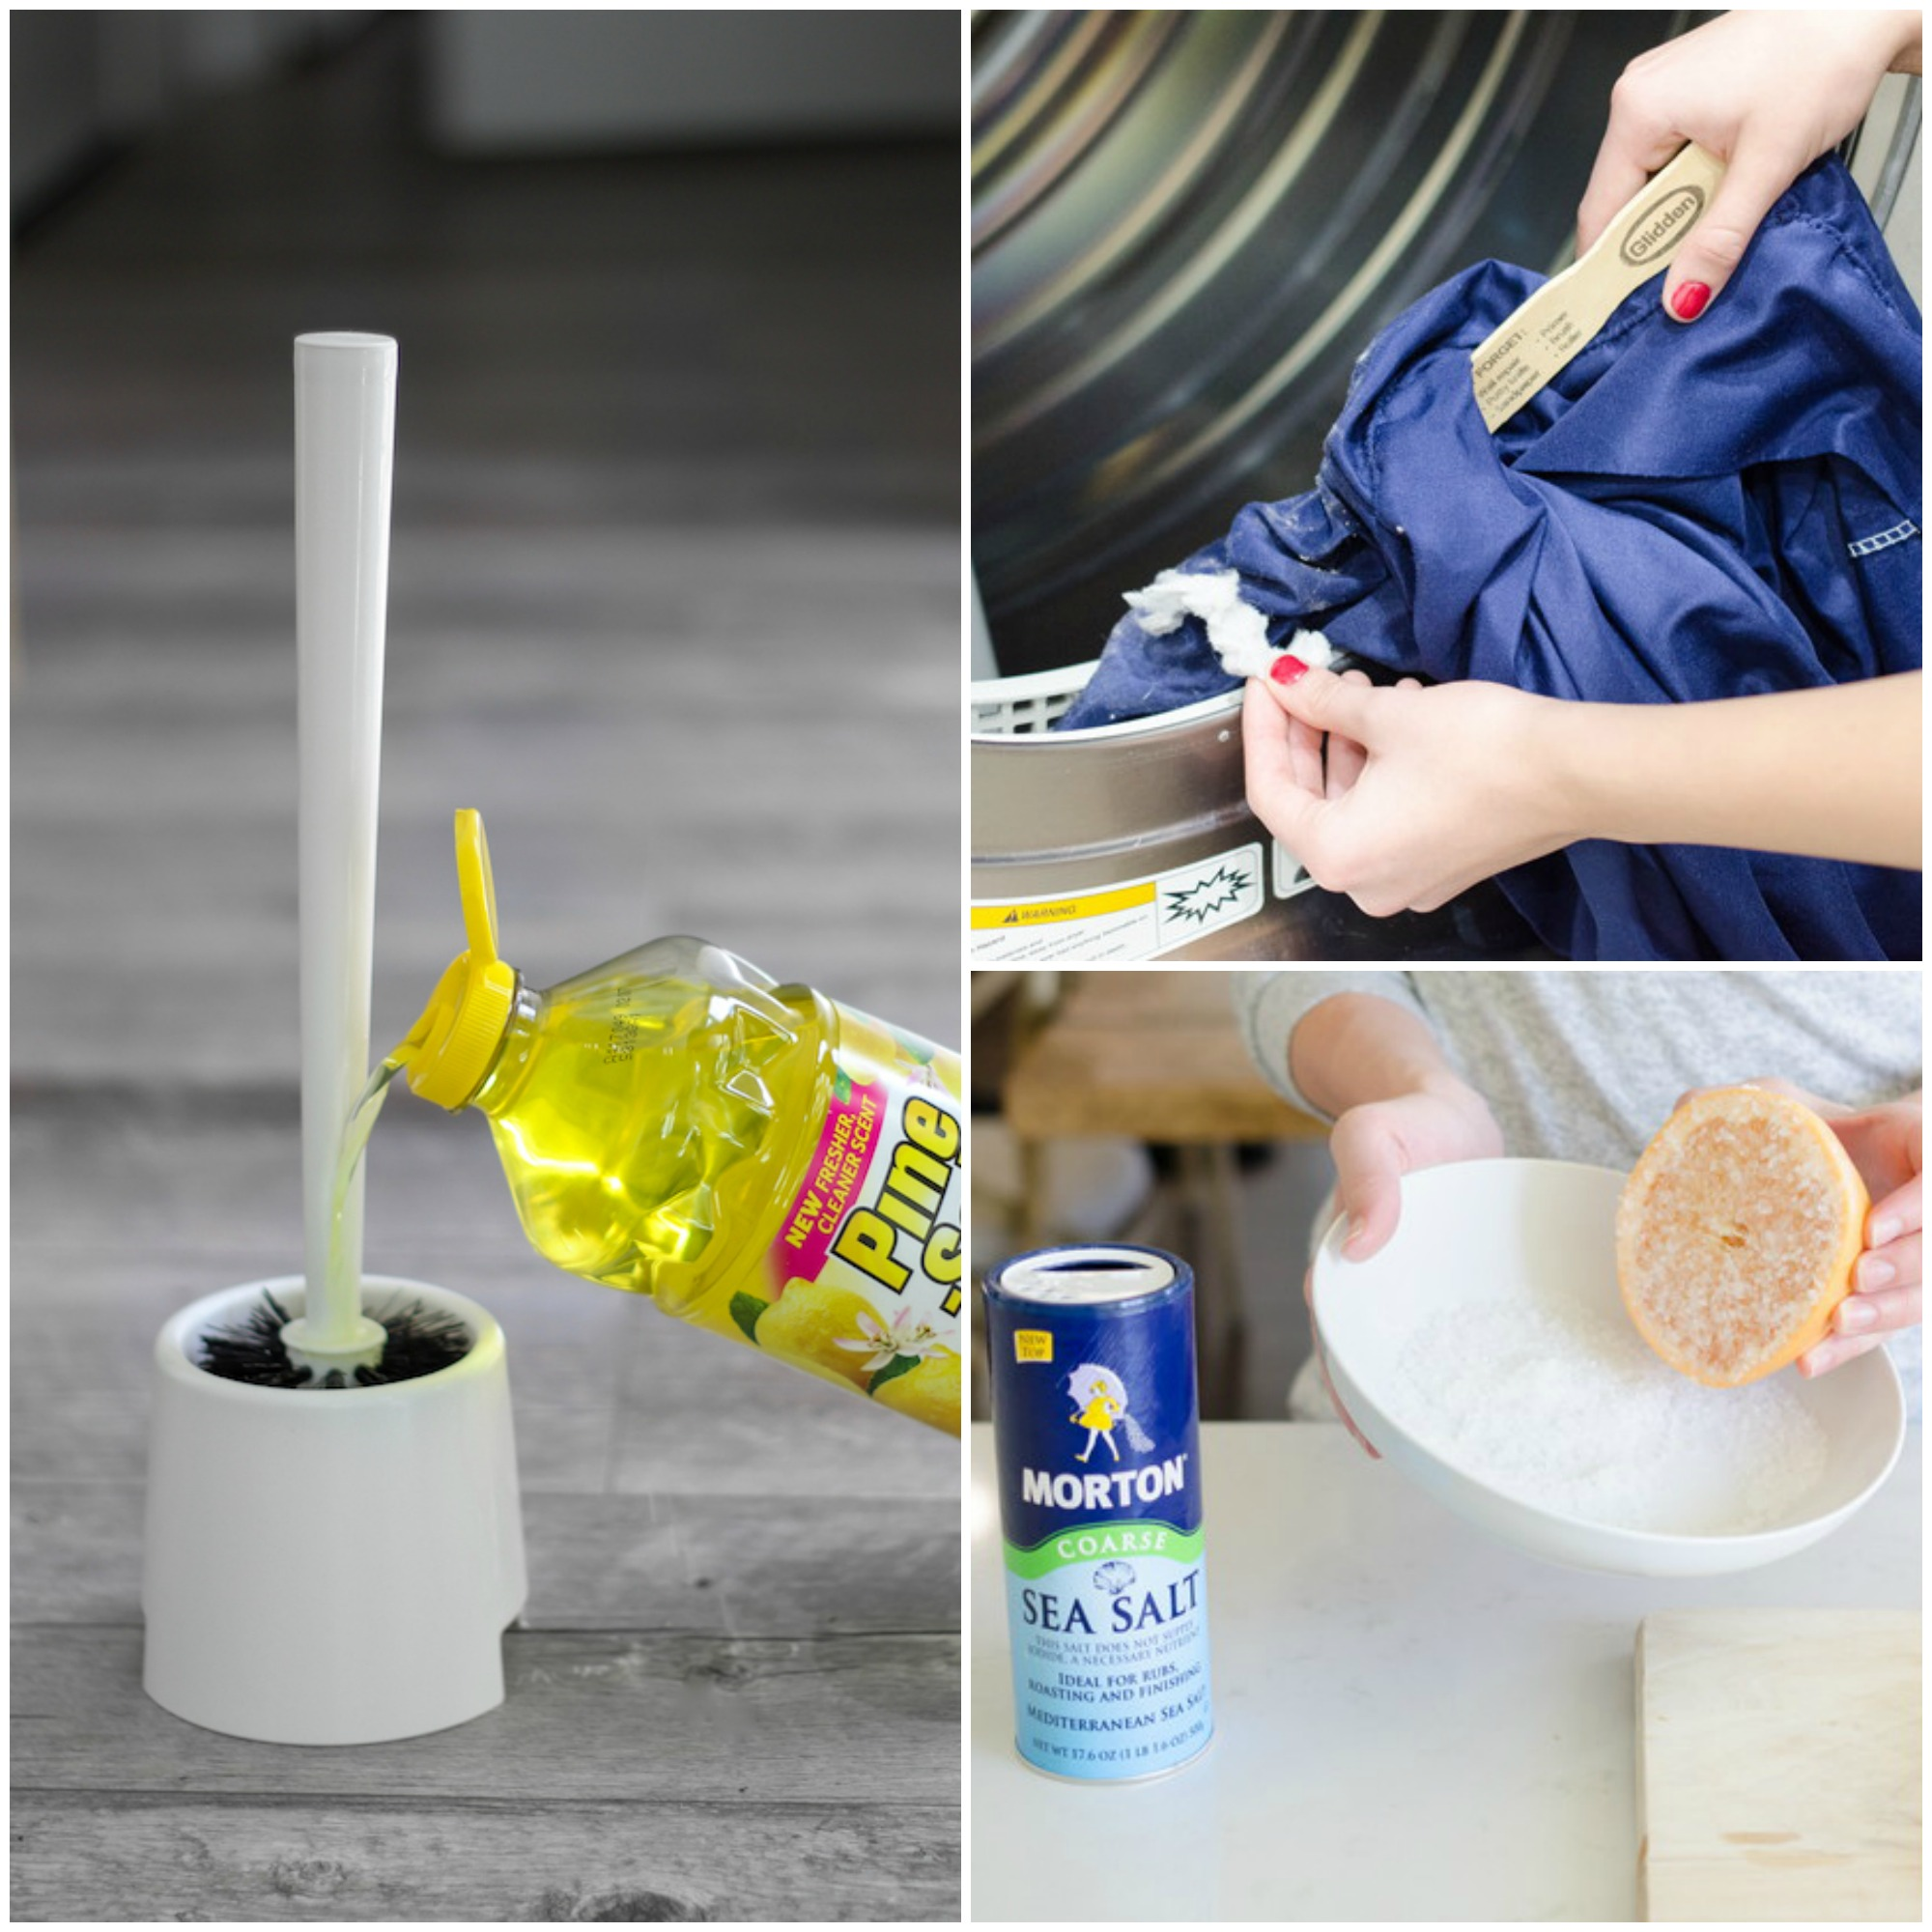 25 Ways to Deep Clean Your Home